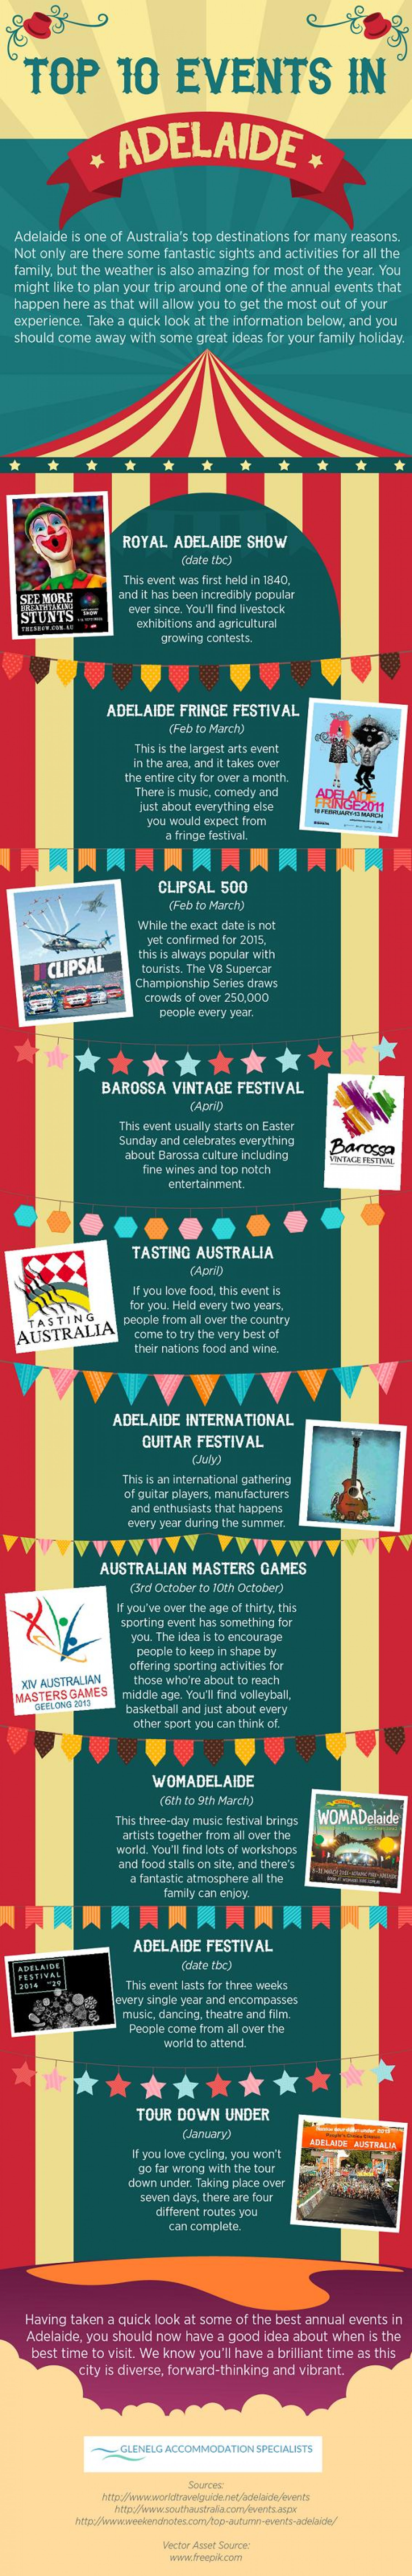 TOP 10 EVENTS IN ADELAIDE Infographic